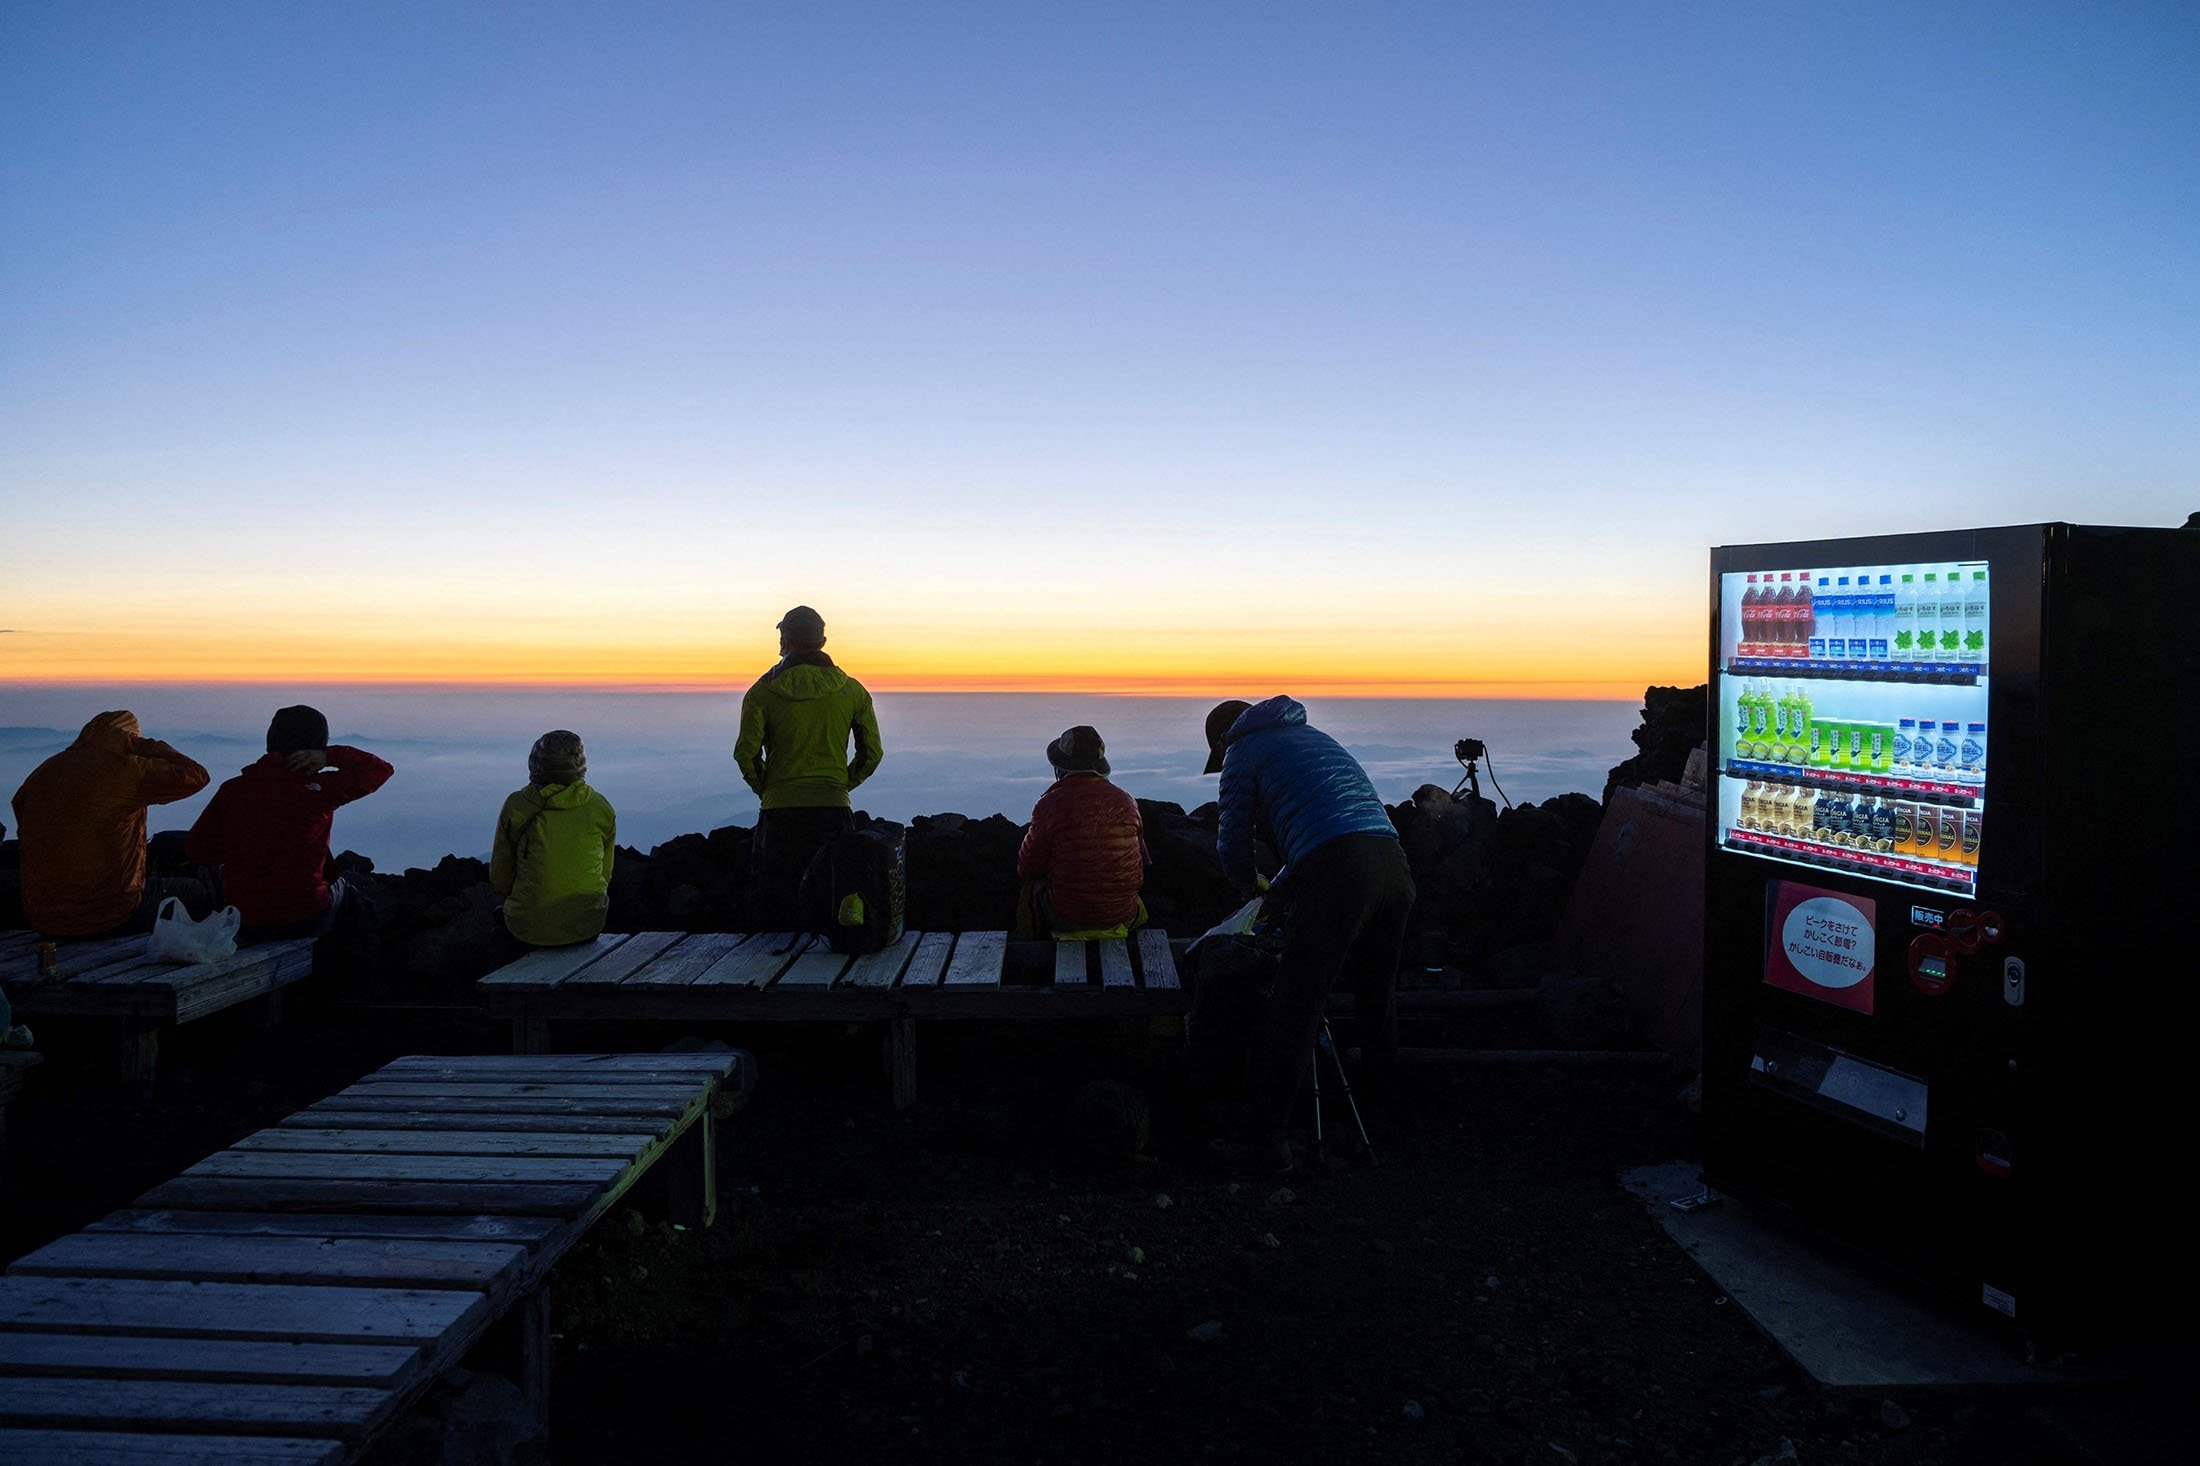 A vending machine with warm and cold drinks for sale can be seen as people wait for the sunrise at the summit of Mount Fuji, some 70 kilometers (43 miles) west of the capital Tokyo, Japan, July 19, 2021. (AFP Photo)